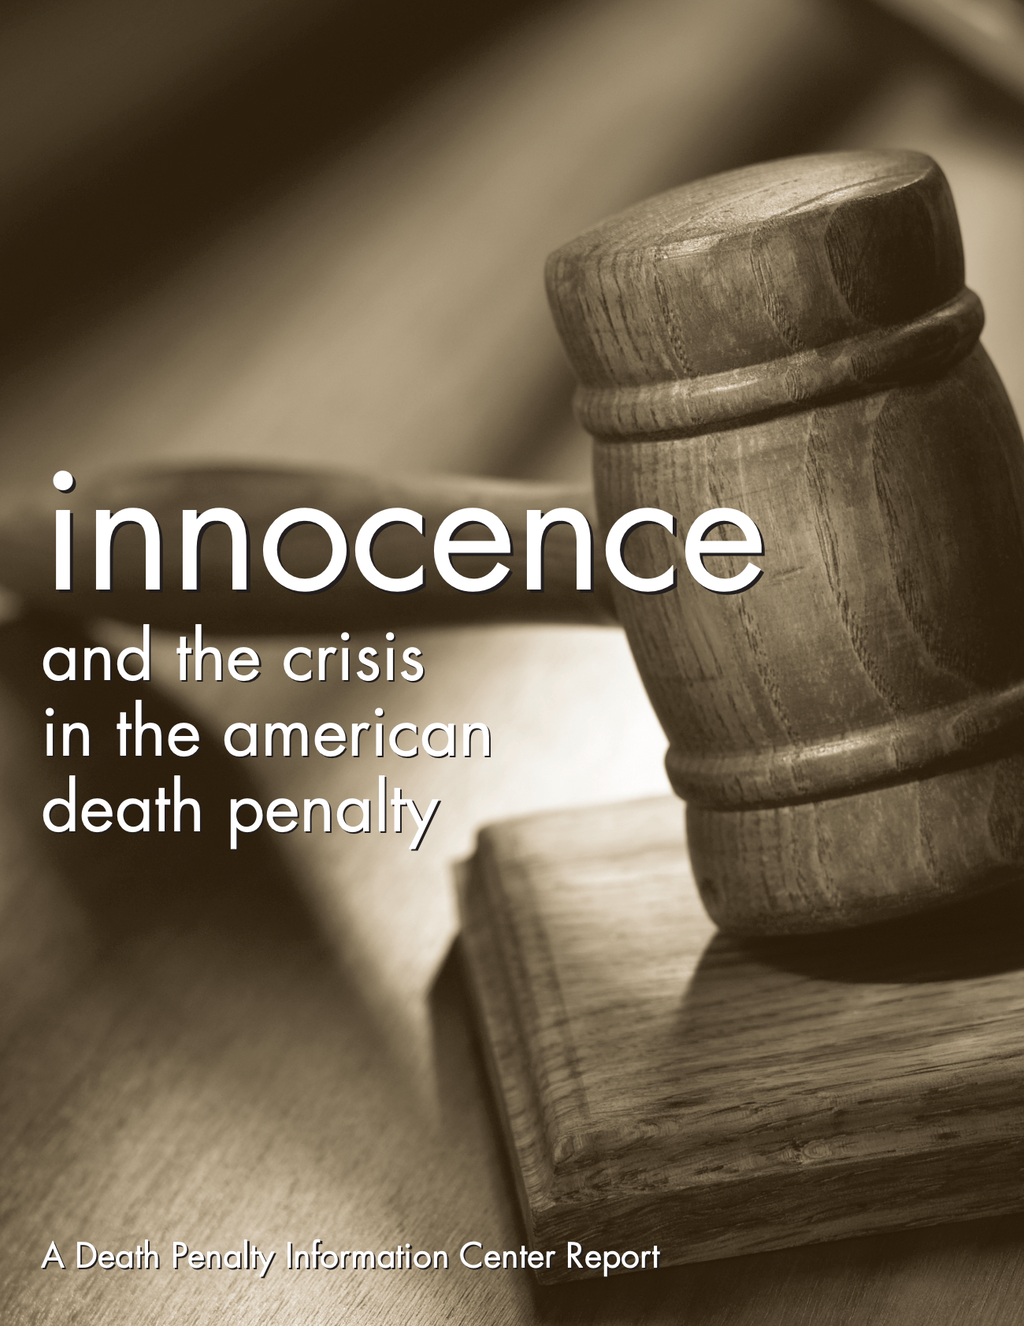 Innocence and the Crisis in the American Death Penalty